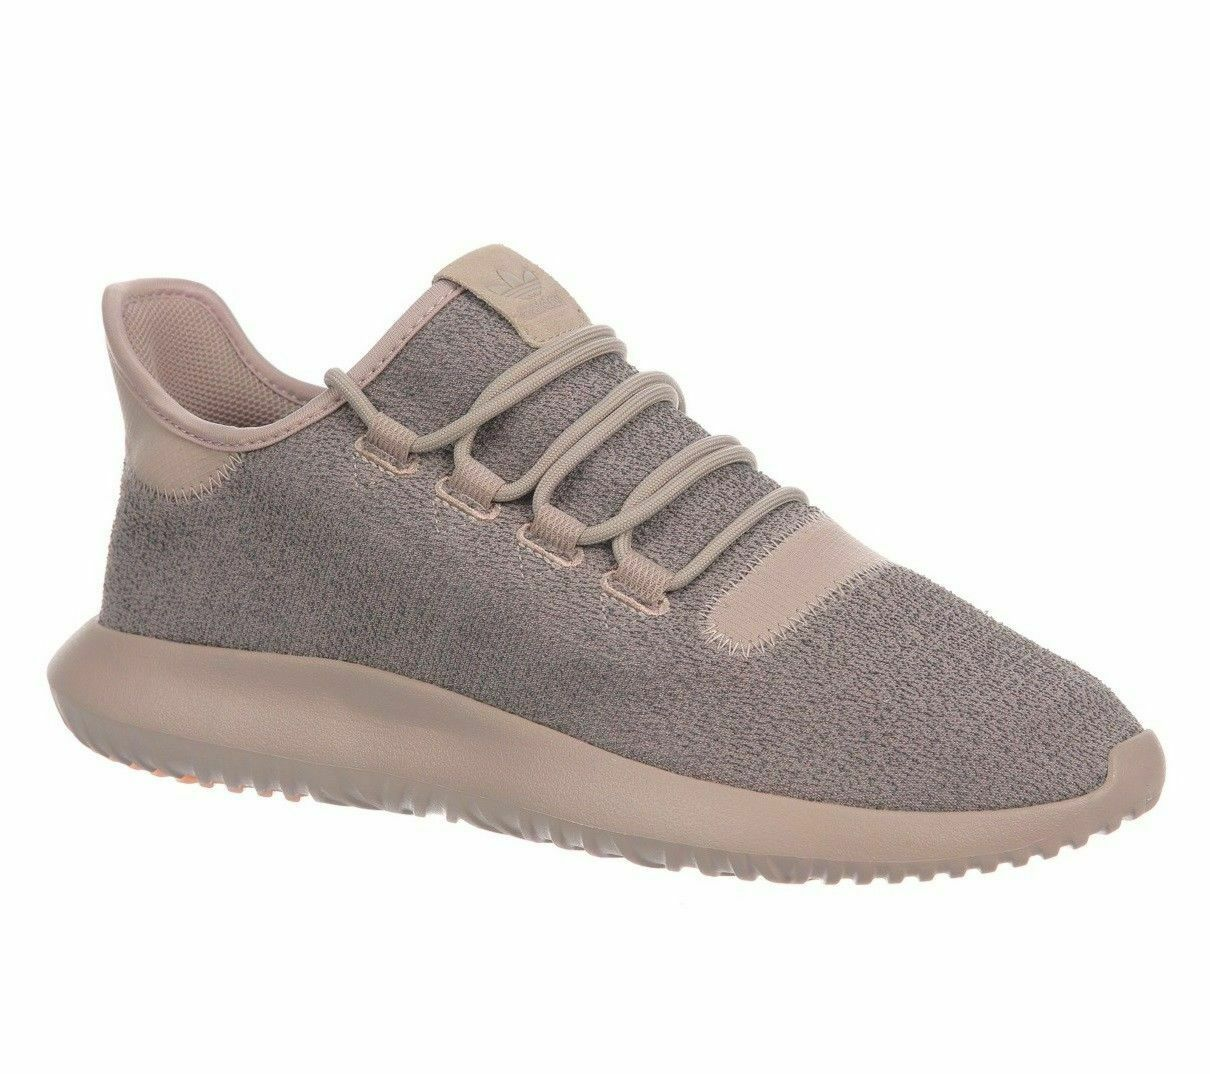 Adidas BY3574 Tubular Shadow Vapour Grey Raw Pink Textile Running Size 8.5